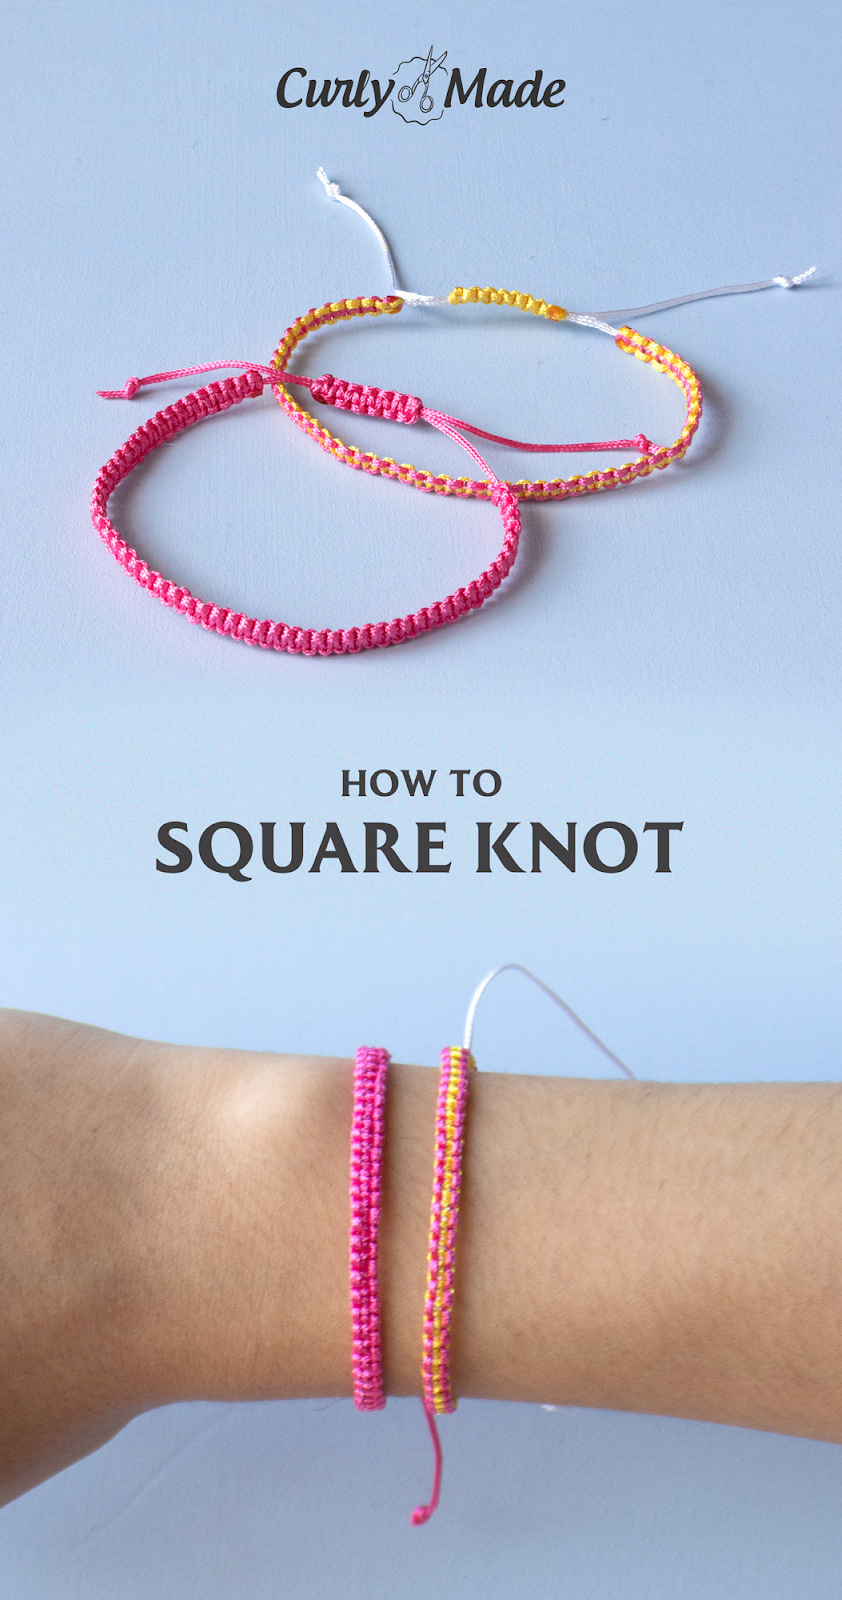 Learn How to Make one of the Easiest Styles of Friendship Bracelets with this Simple Step-by-Step Video Tutorial